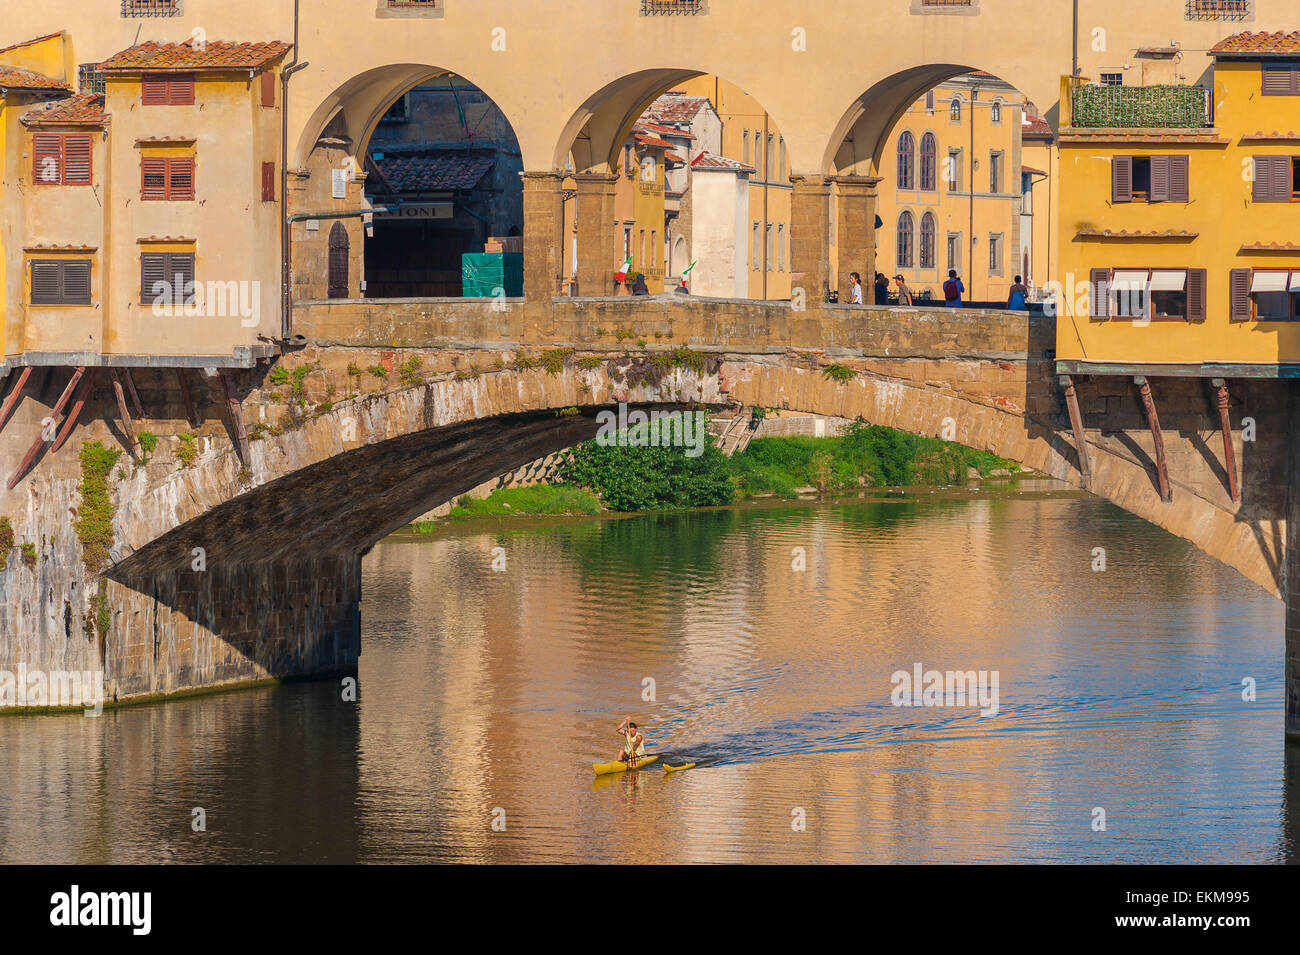 Florence summer River Arno, view of a man in a canoe rowing beneath the Ponte Vecchio in Florence, Italy. Stock Photo